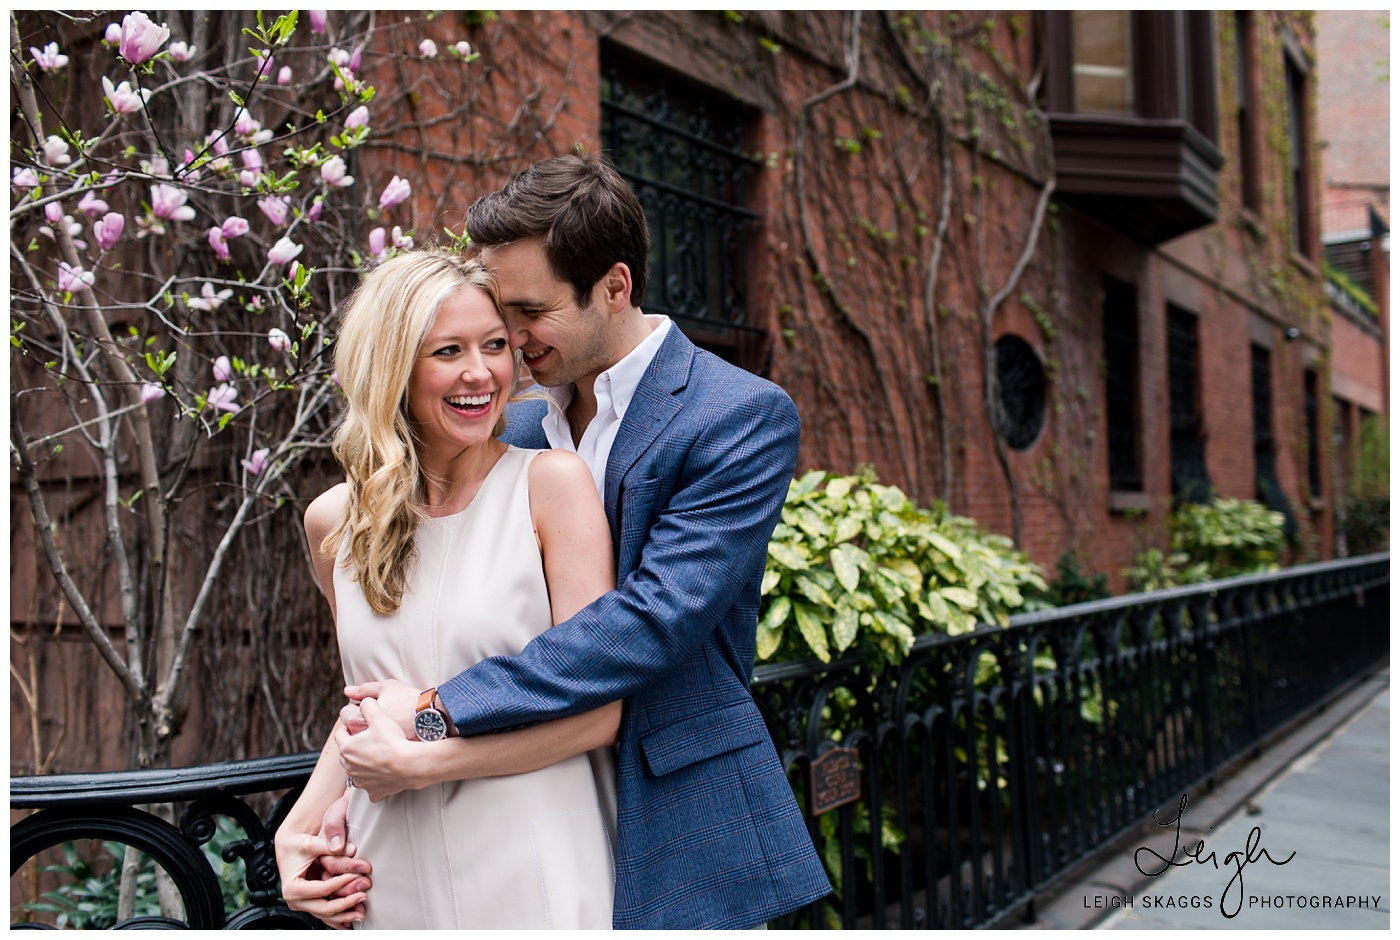 Morghan & Alex | Gramercy Park Engagement Session